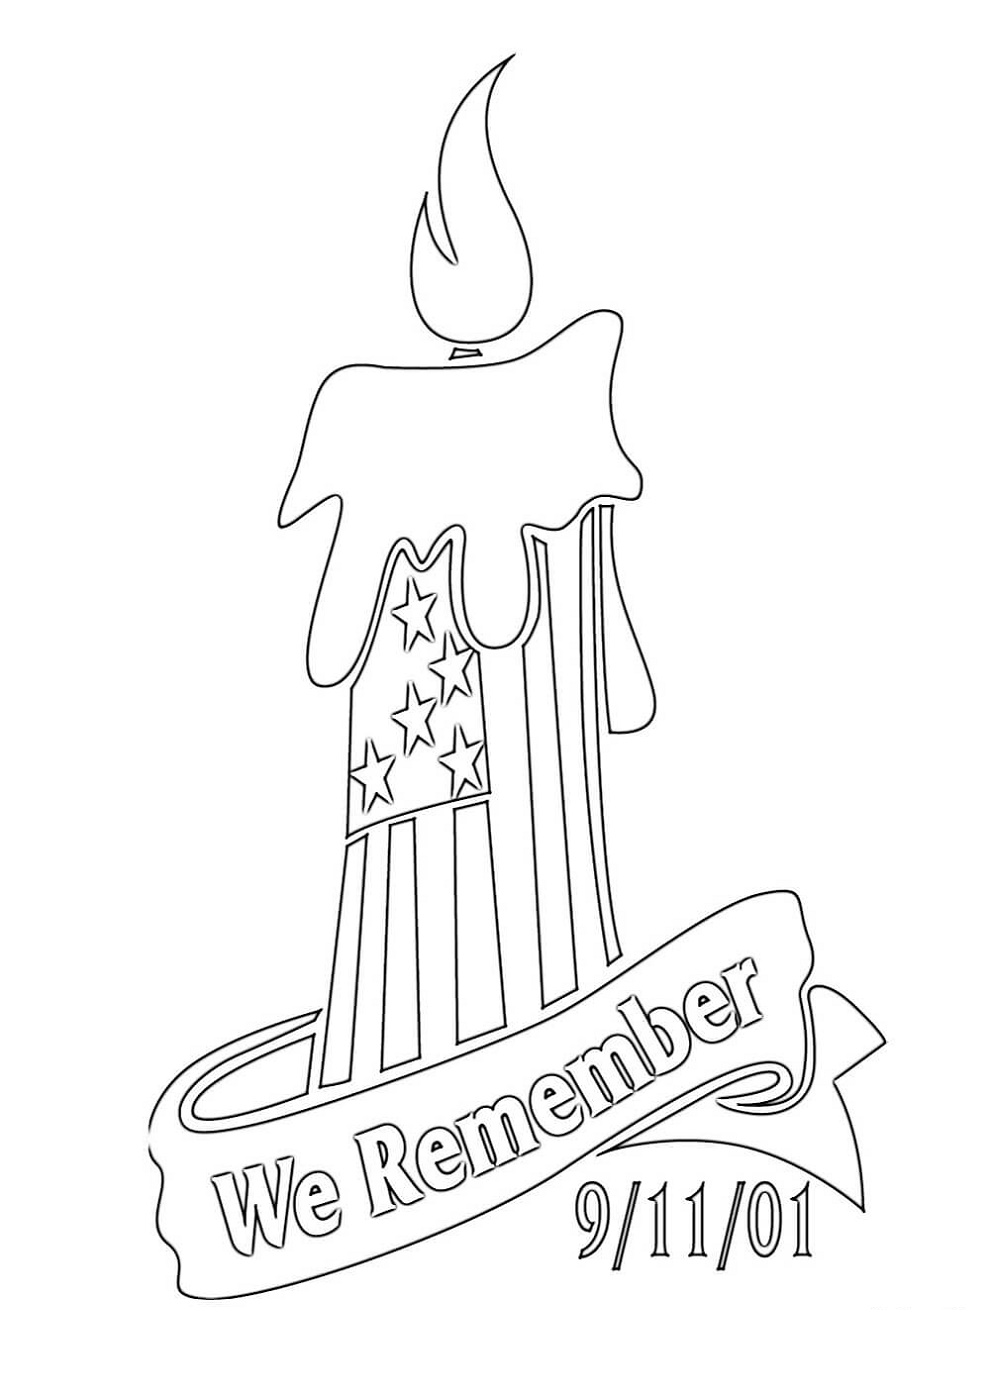 9 11 Coloring Pages We Remember